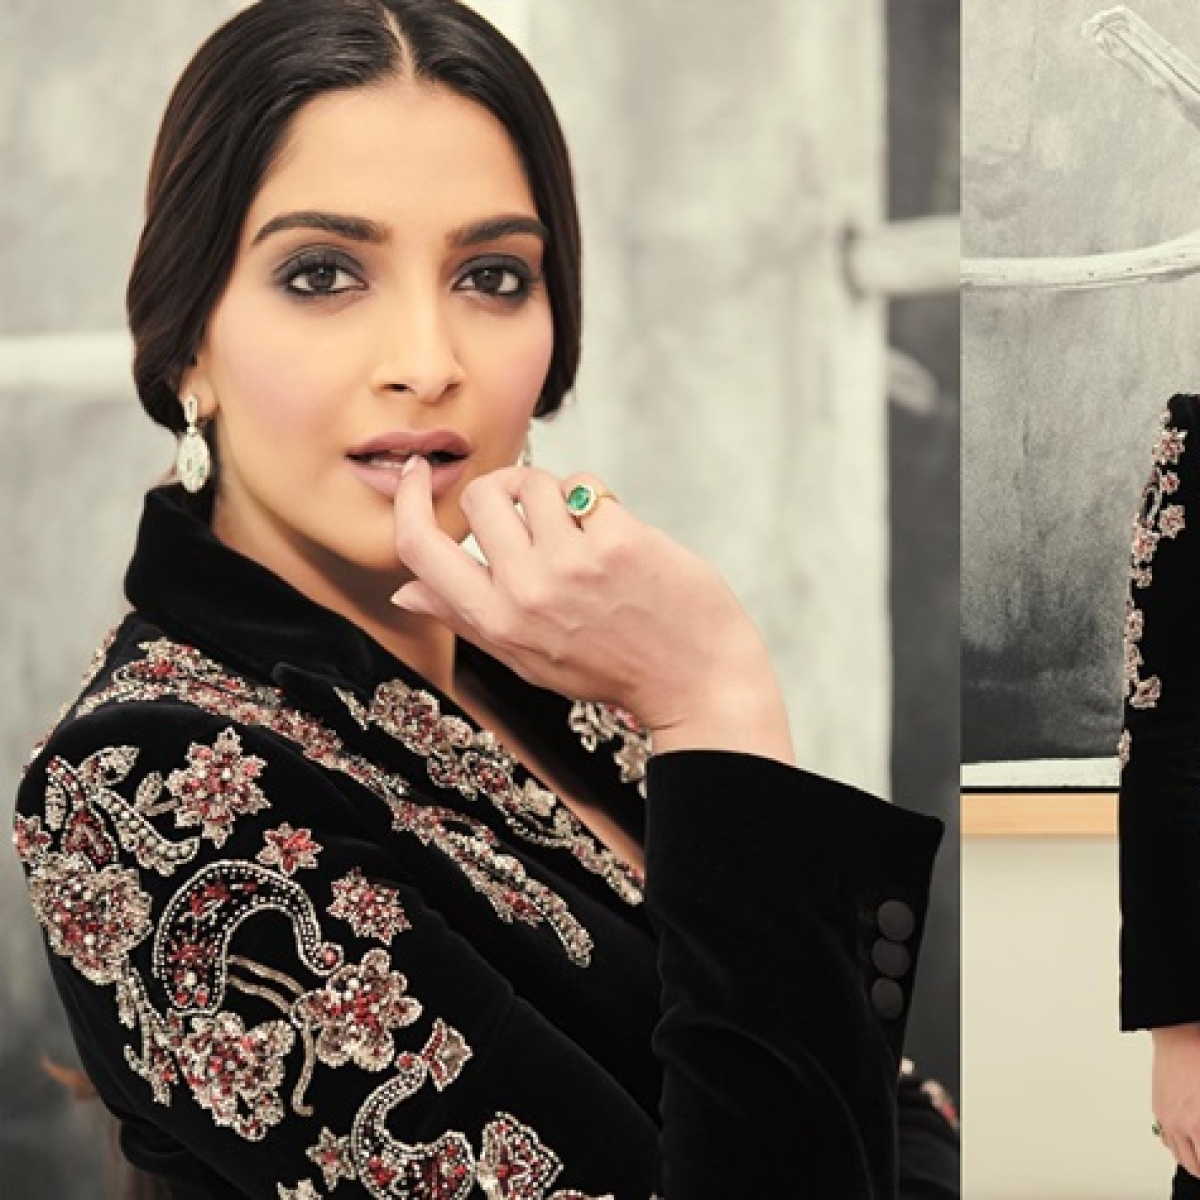 'Watch 'Veere Di Wedding' to punish yourself': Sonam Kapoor asks what to watch, Twitter has a hilarious list of suggestions